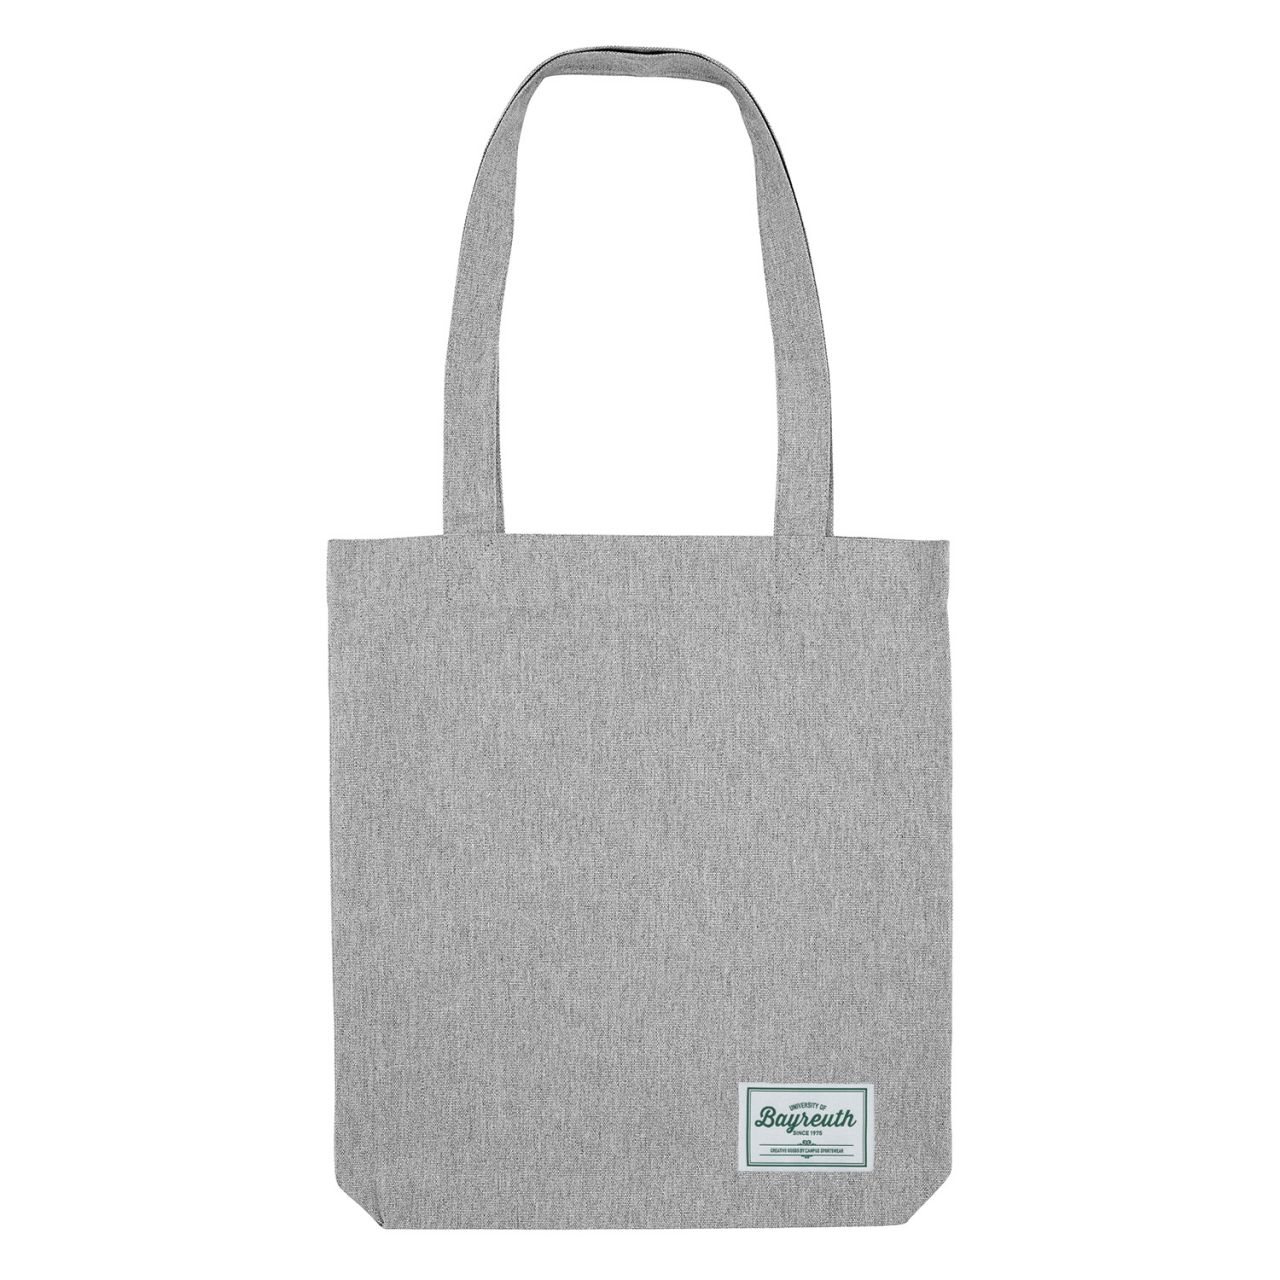 Organic Tote Bag, heather grey, label